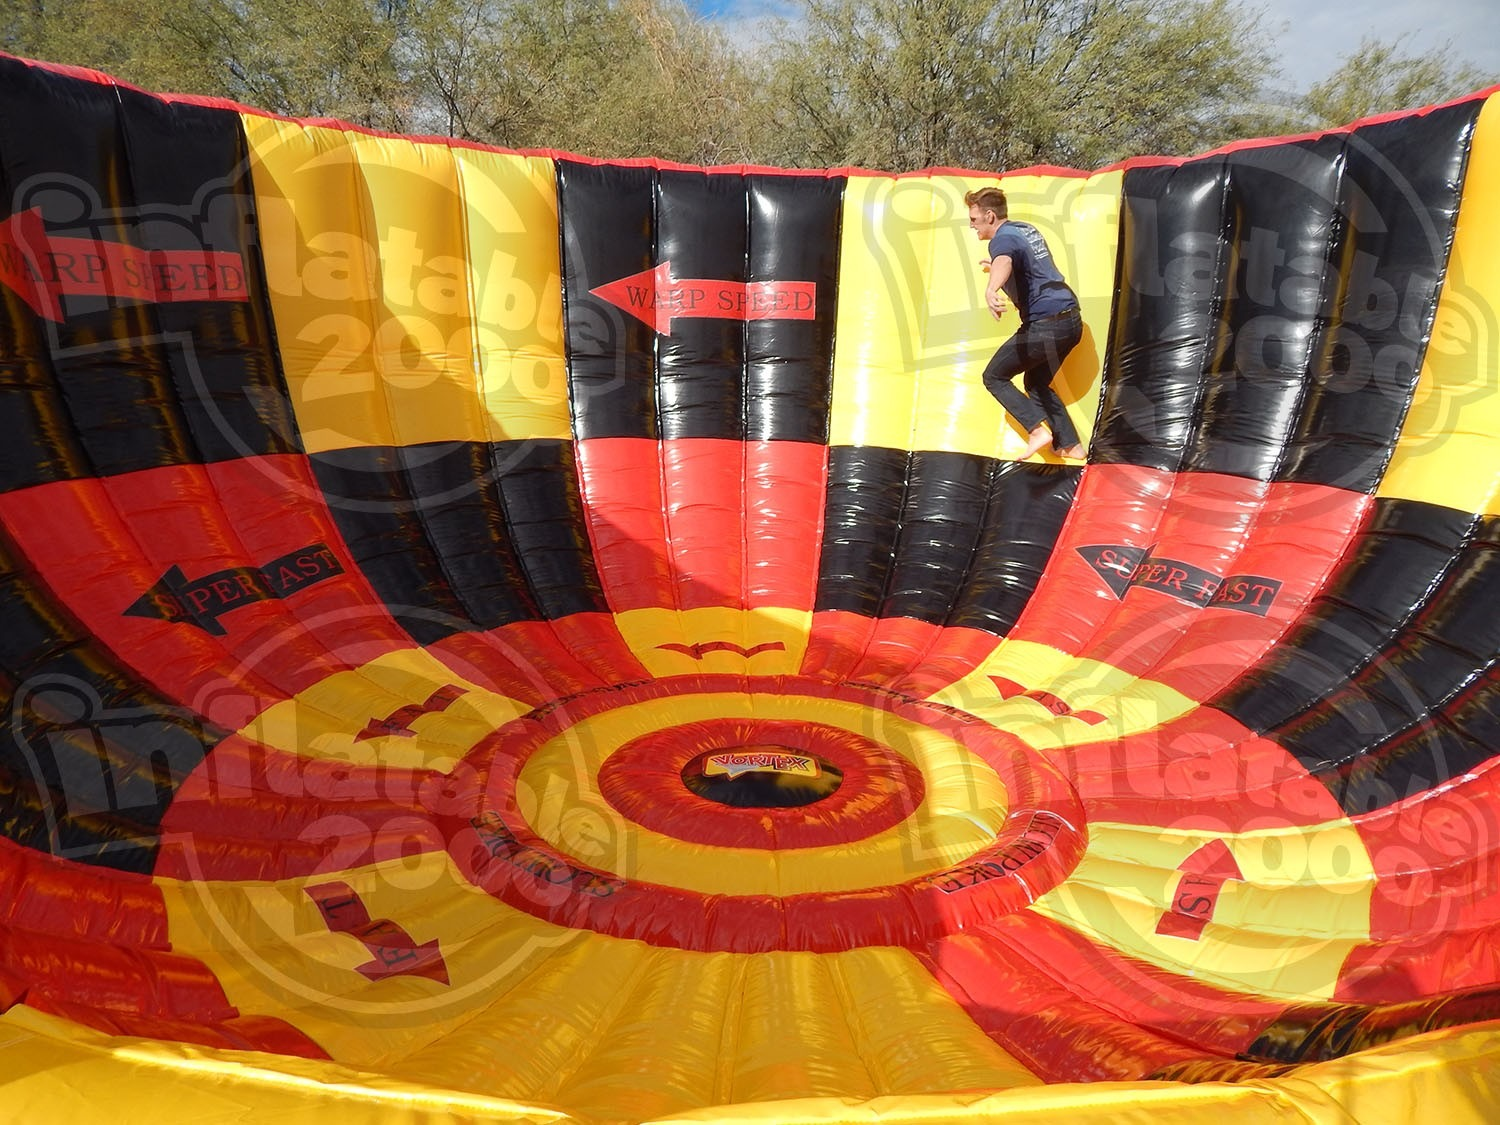 Inflatable vortex 2